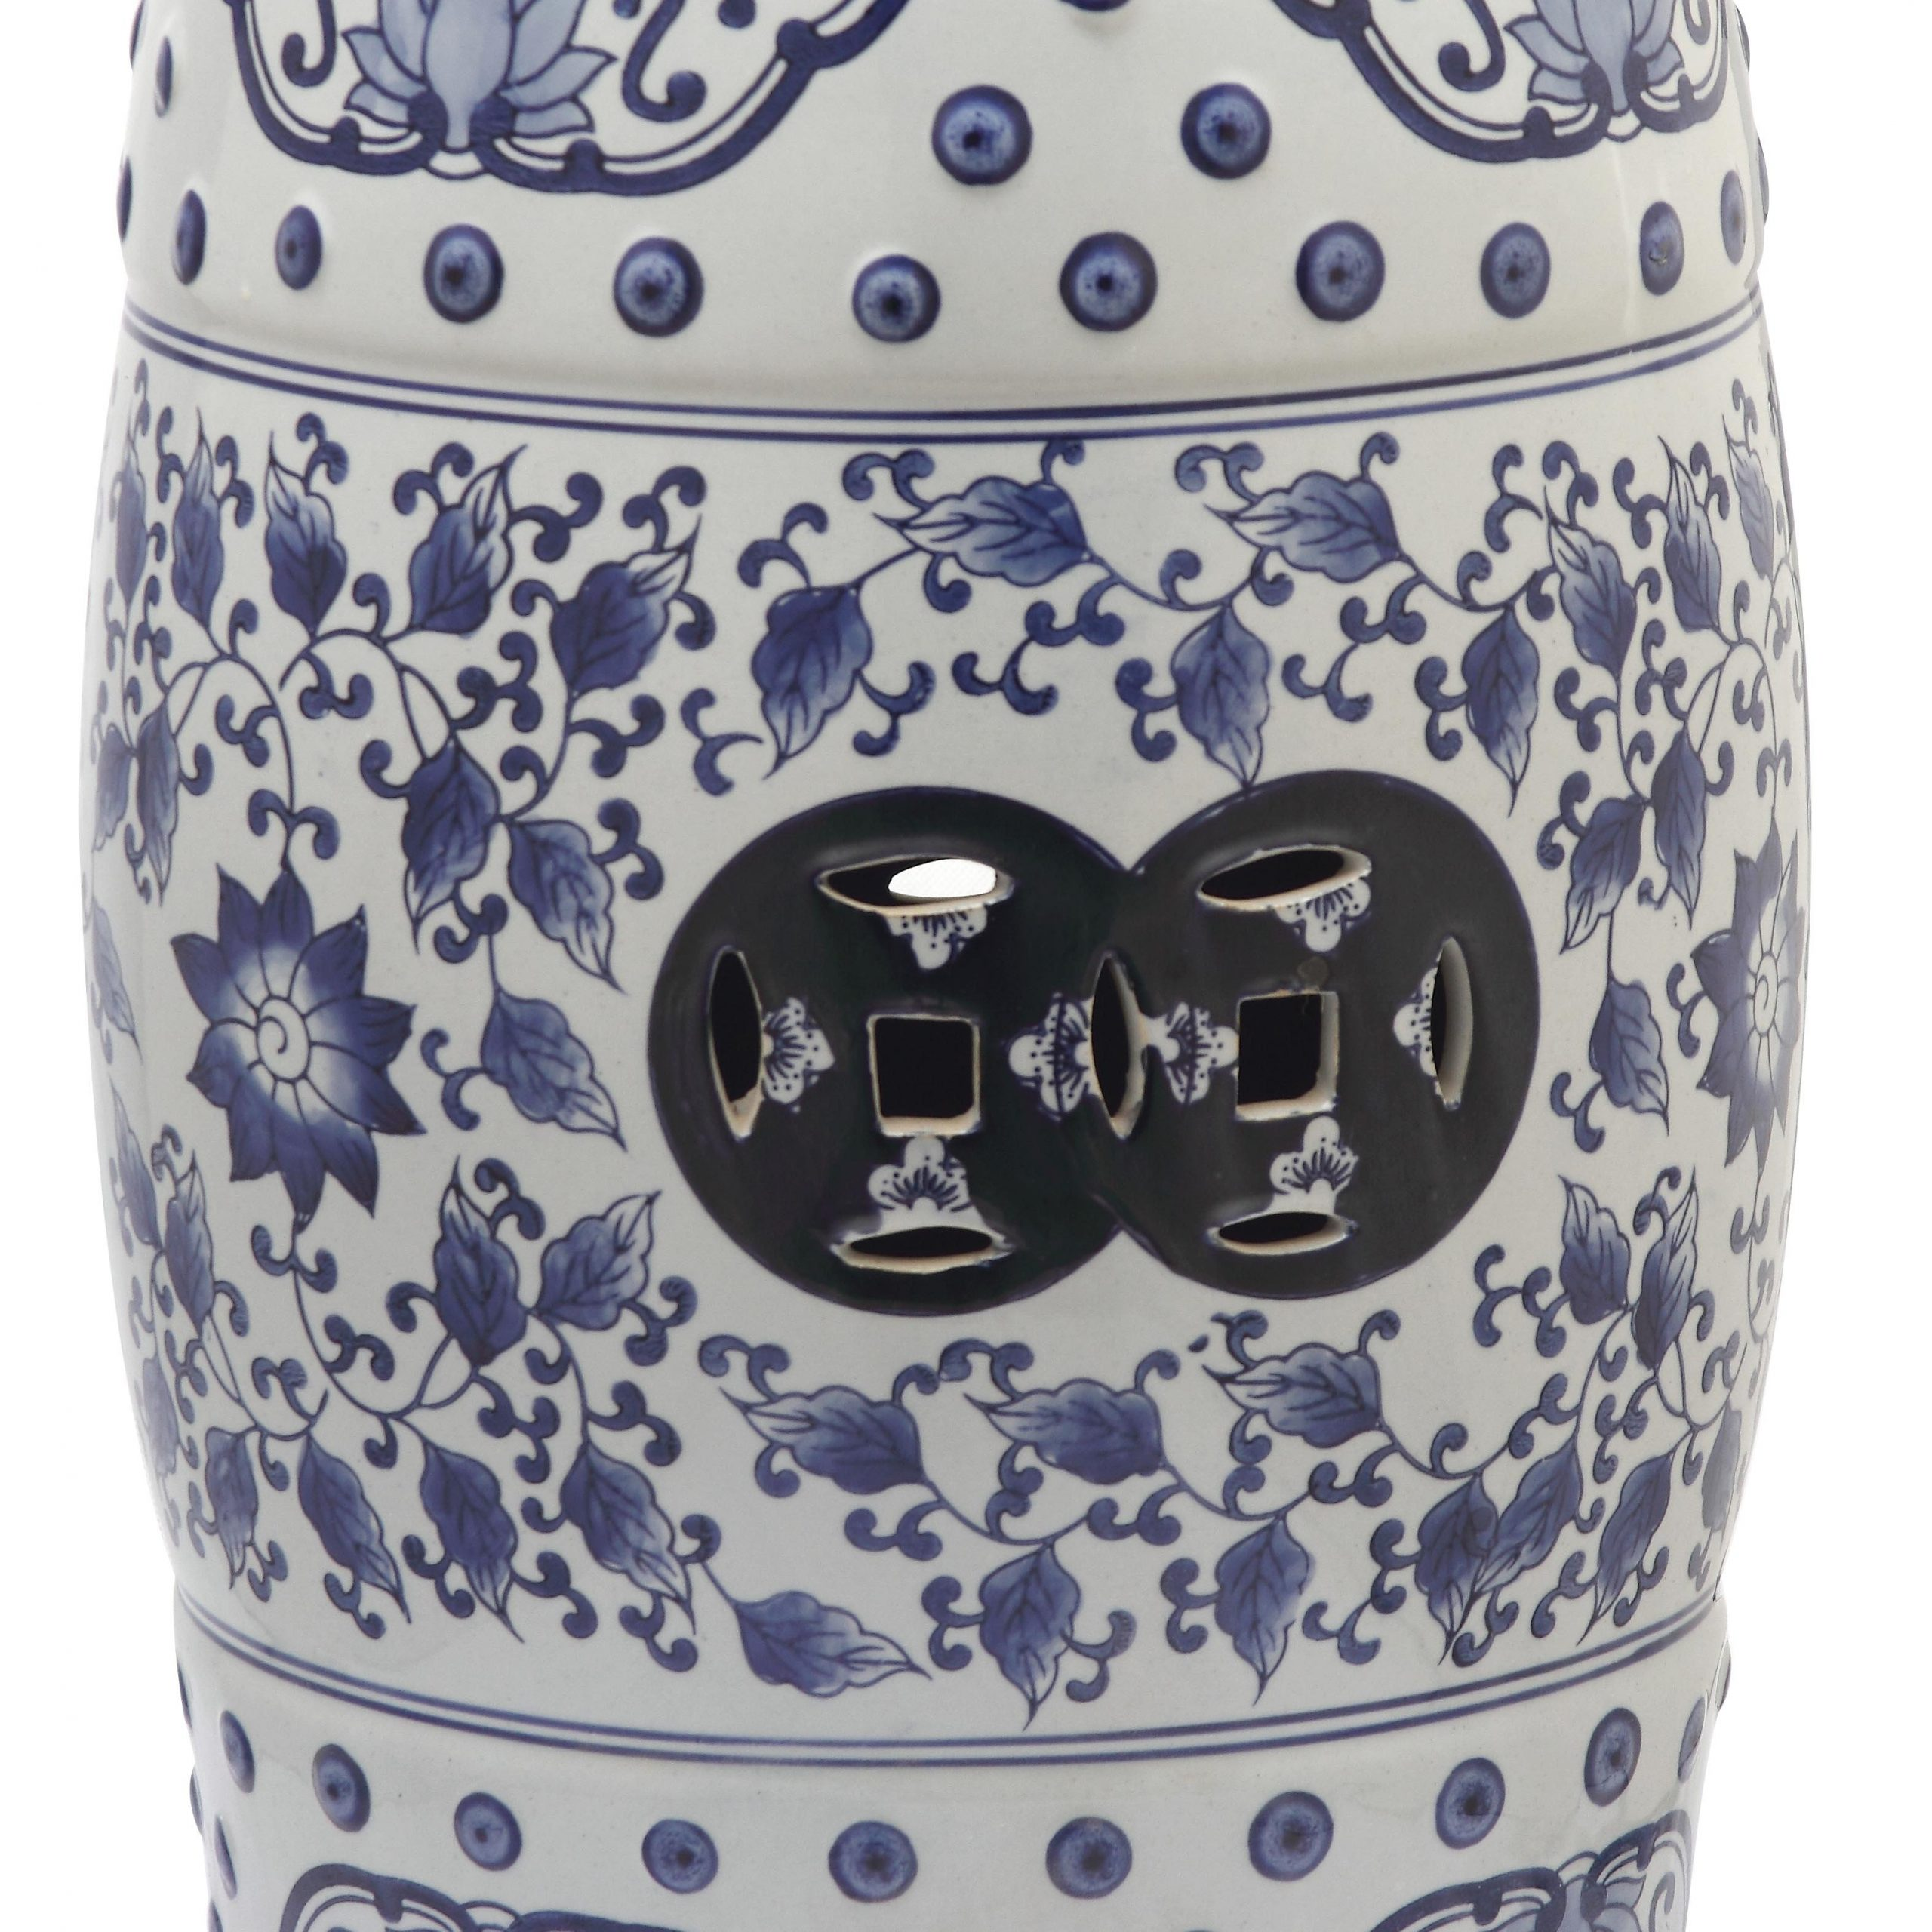 Blue & White Garden Stools You'll Love In 2020 Within Recent Bonville Ceramic Garden Stools (View 5 of 30)